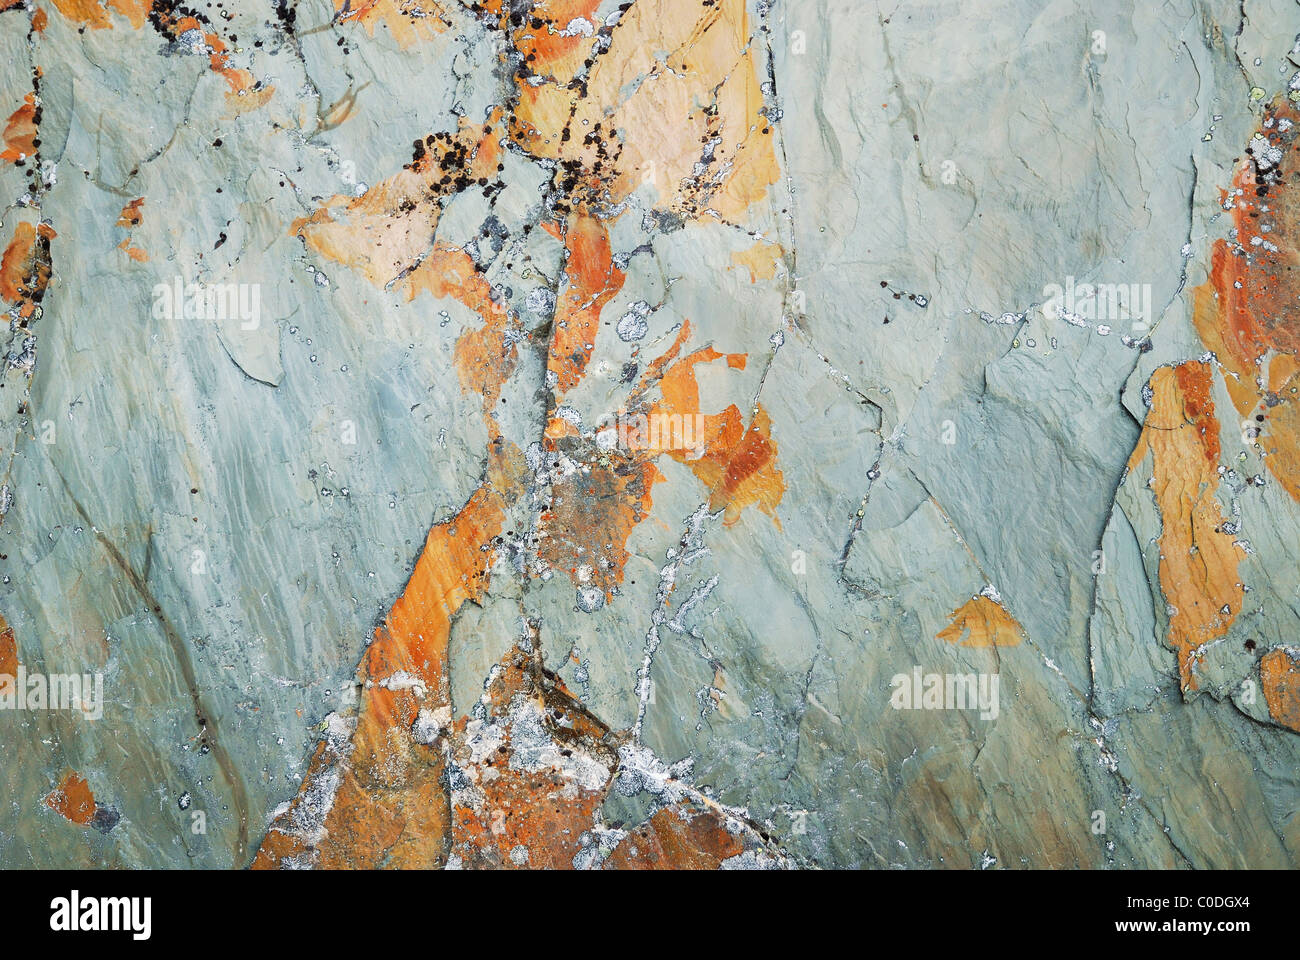 Details and surface of greenish marble untreated. - Stock Image